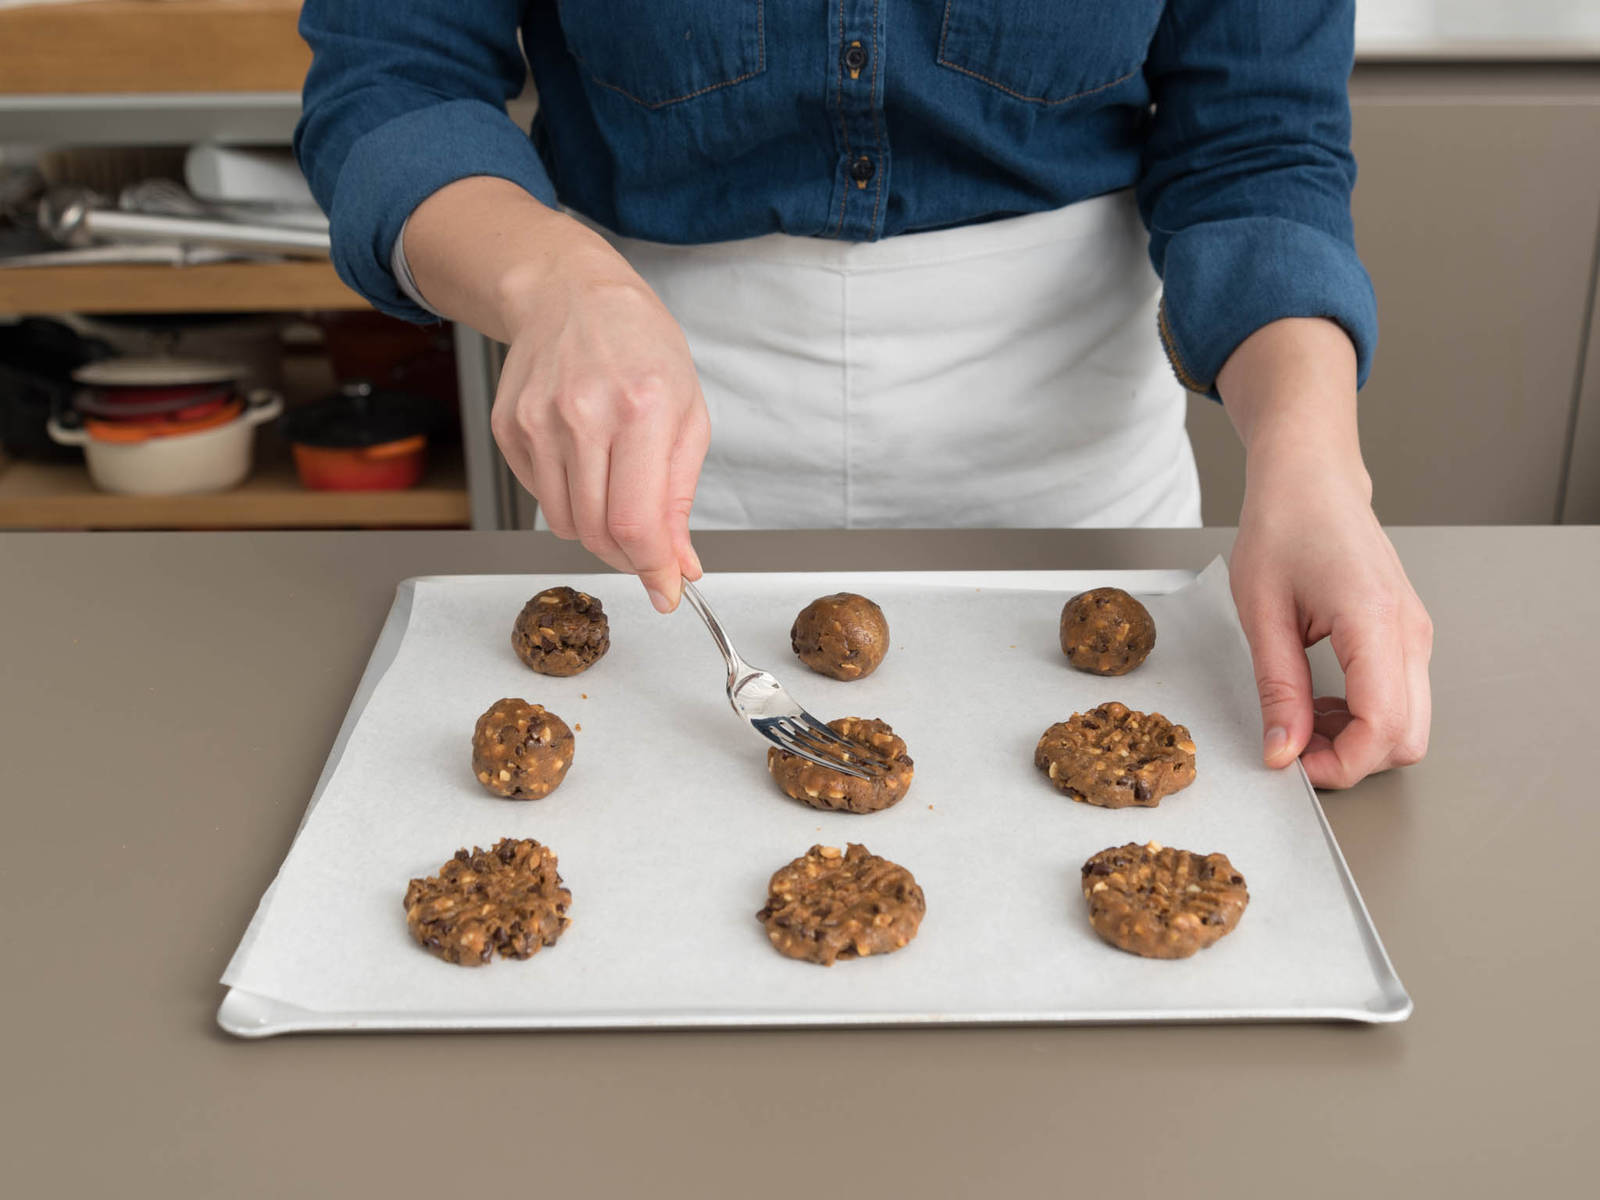 Scoop dough into equal-sized balls and place on parchment paper-lined baking sheets, spacing balls about 5 cm/2 in. apart. Use fork tines to flatten and make crisscross marks on cookies. Sprinkle with flaky sea salt, if desired.